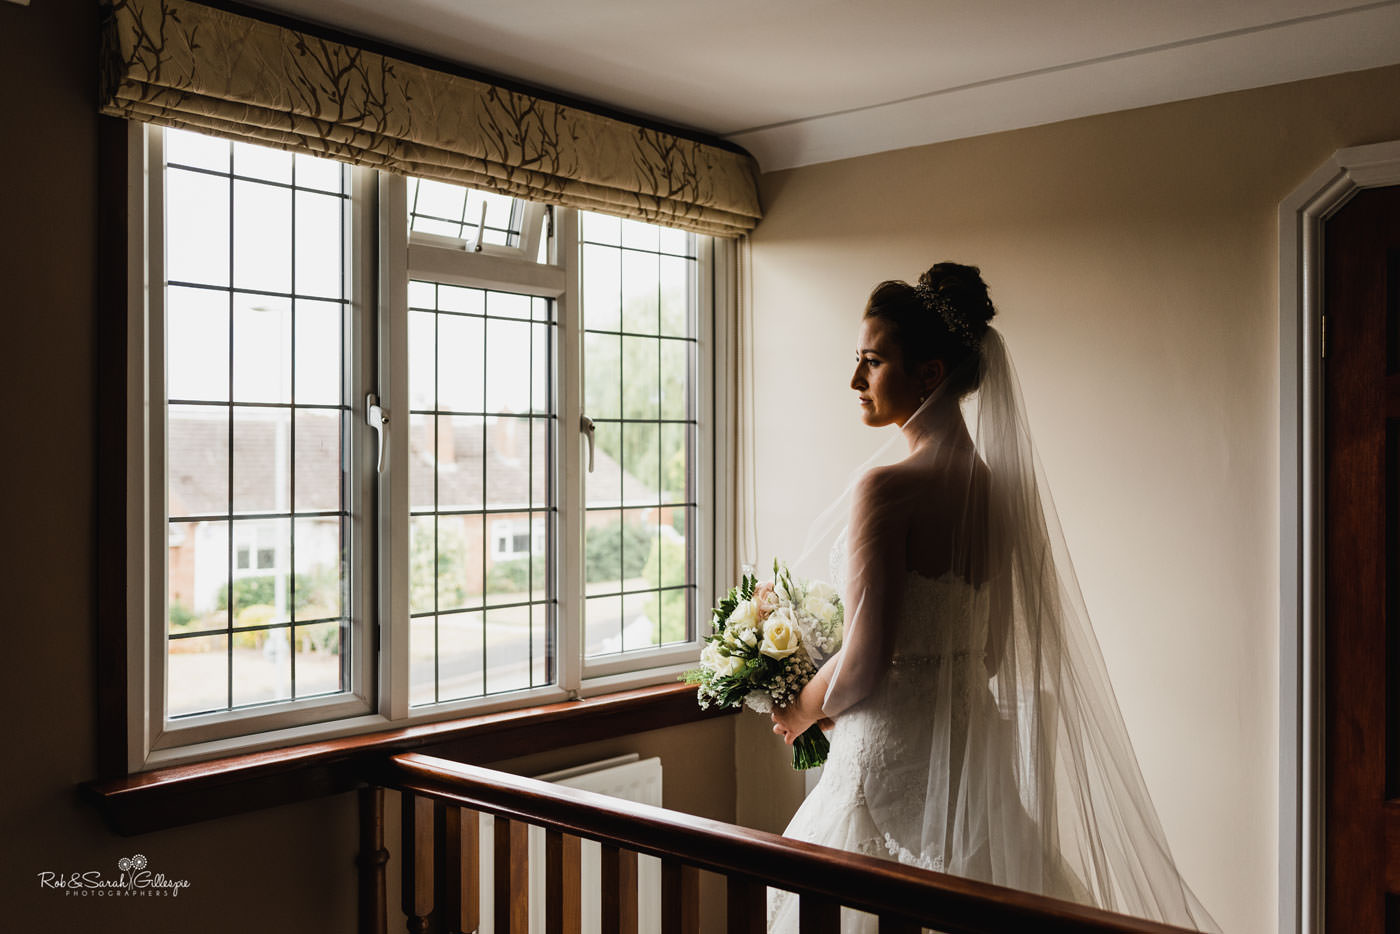 Portrait of bride in window light